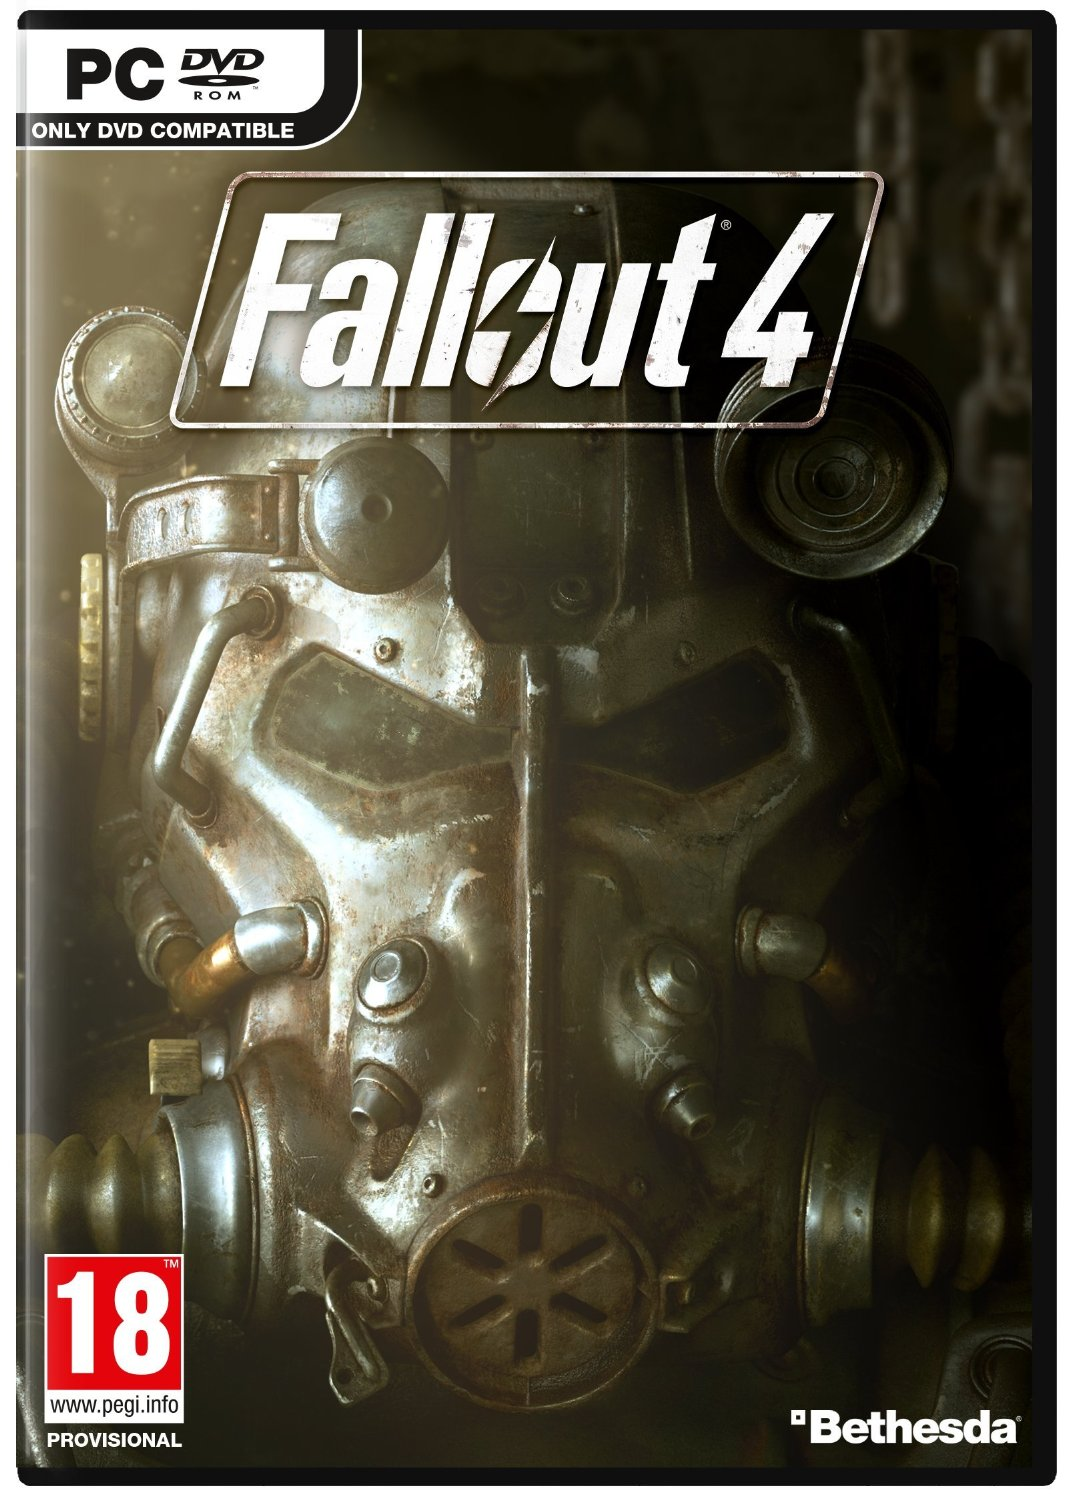 Poster for Fallout 4